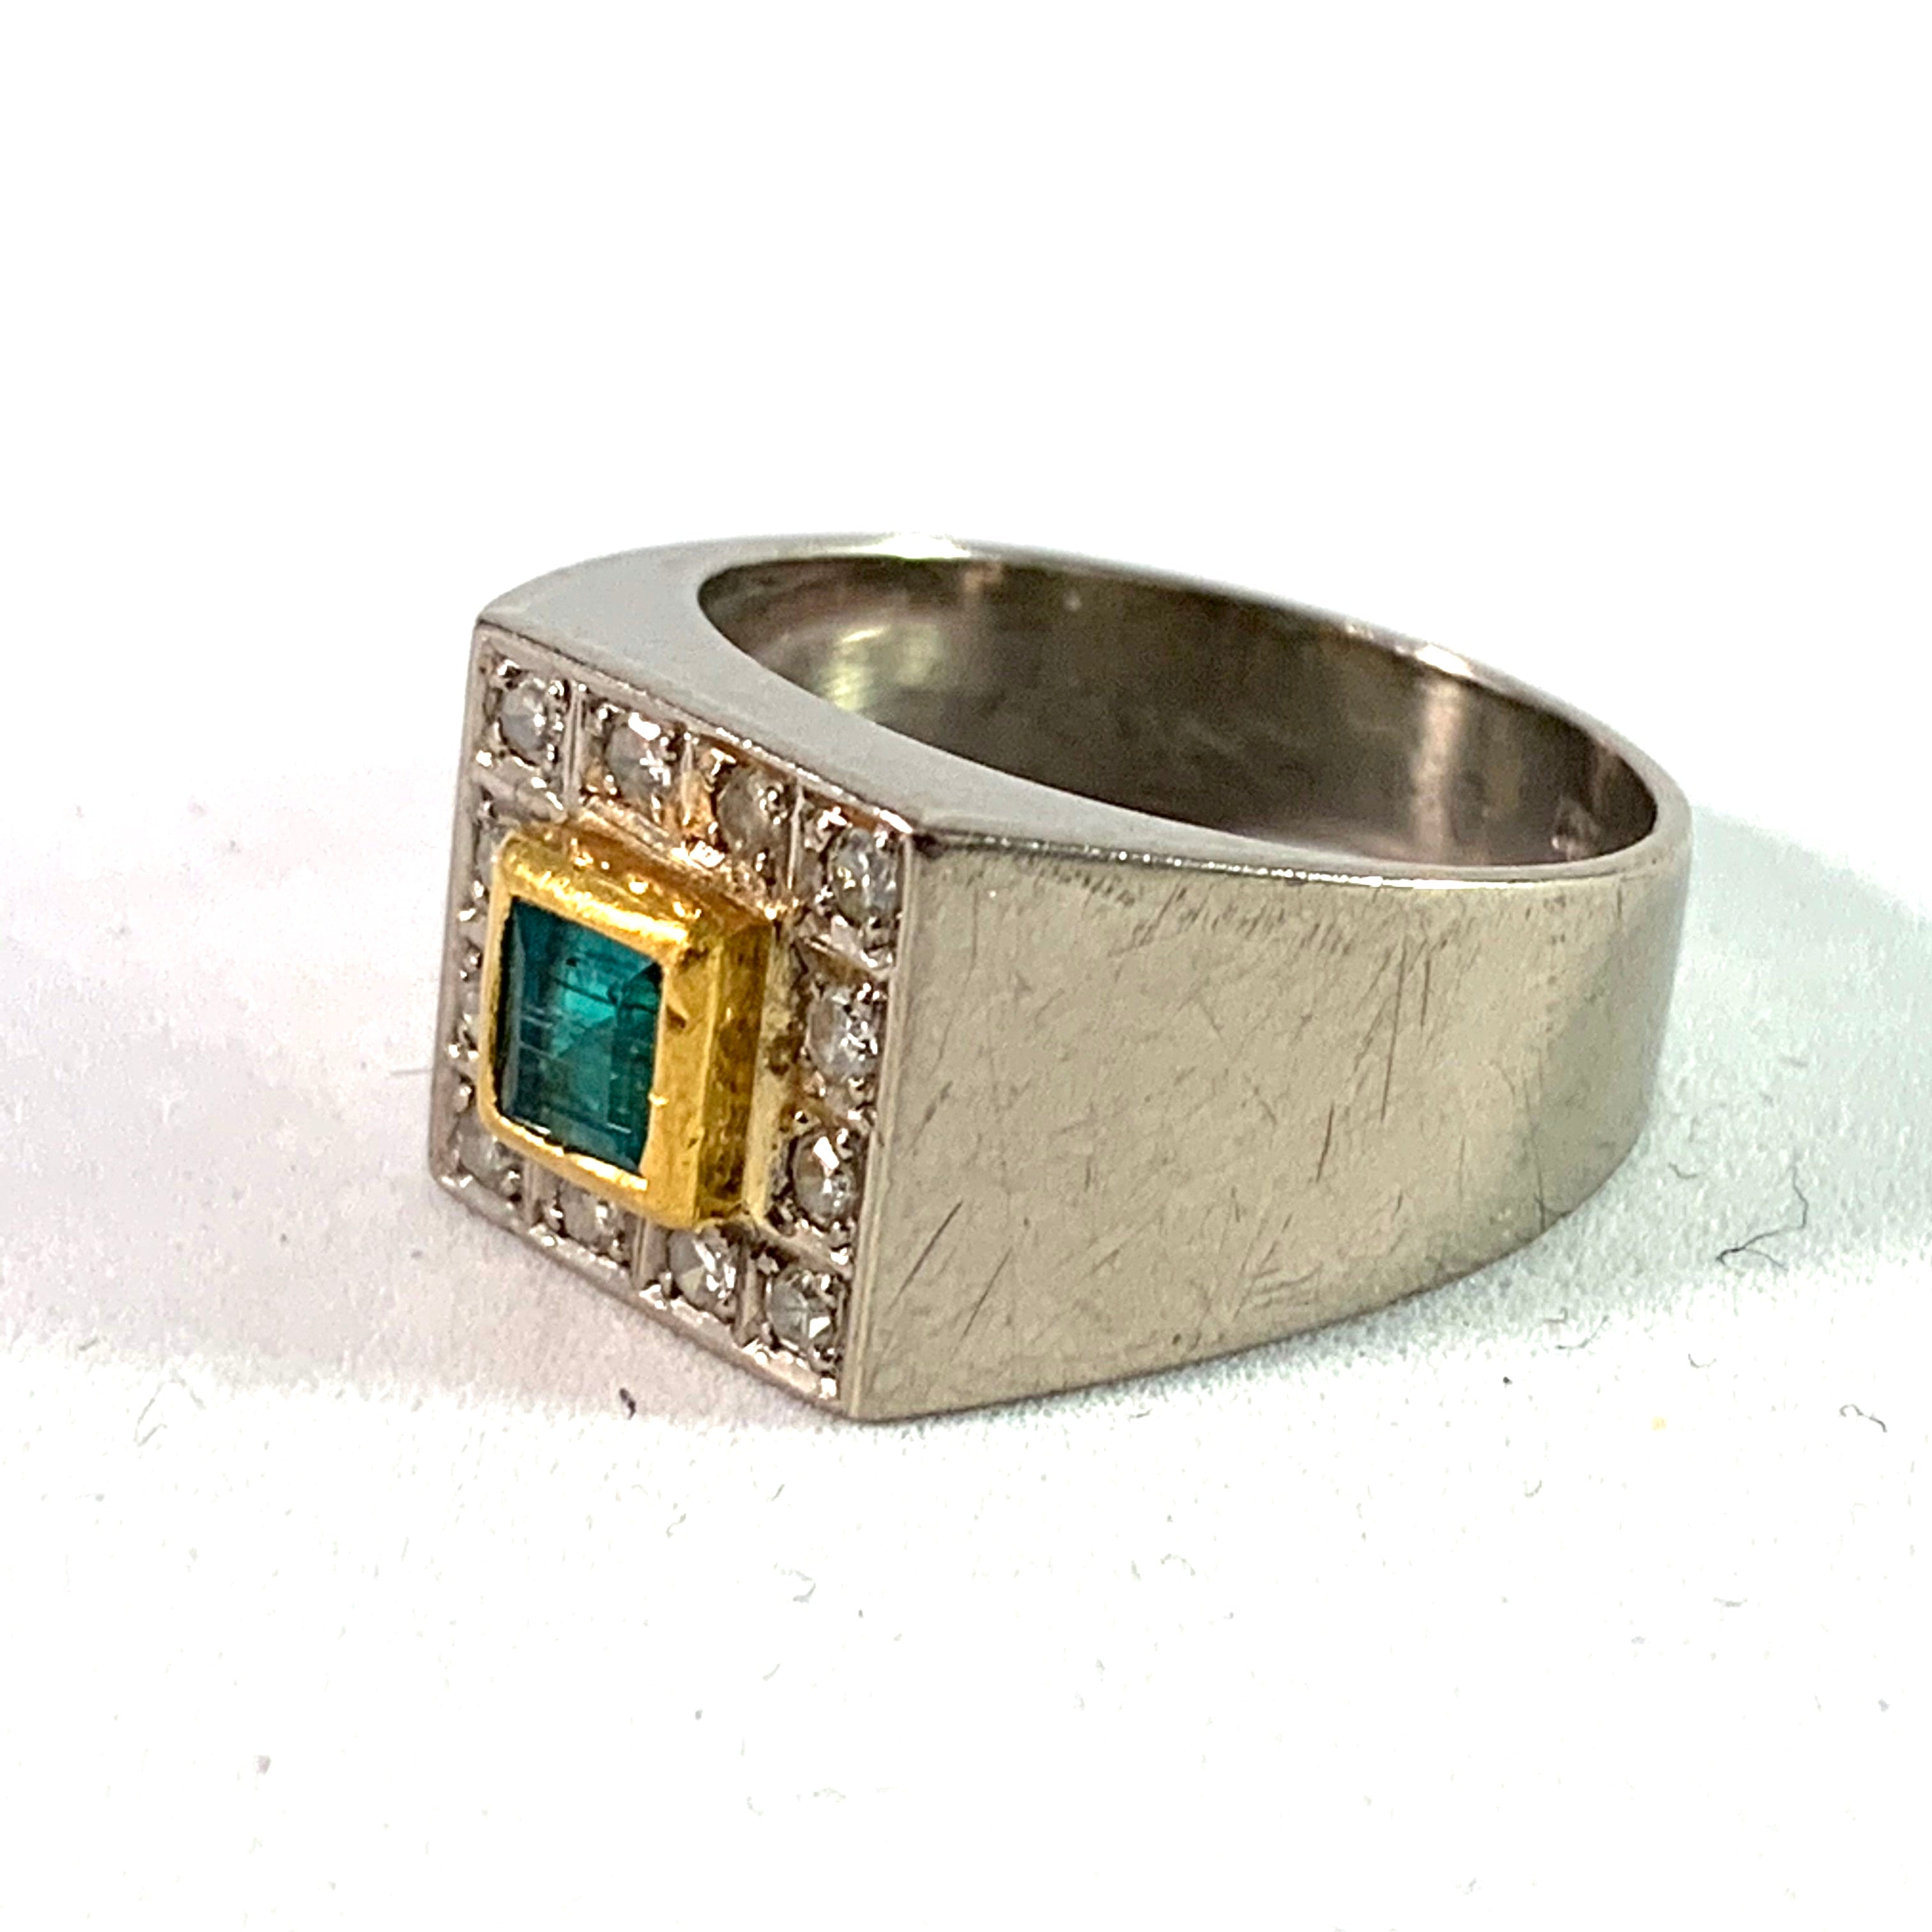 Heribert Engelbert, Sweden 1964, 18k Gold Emerald Diamond Ring